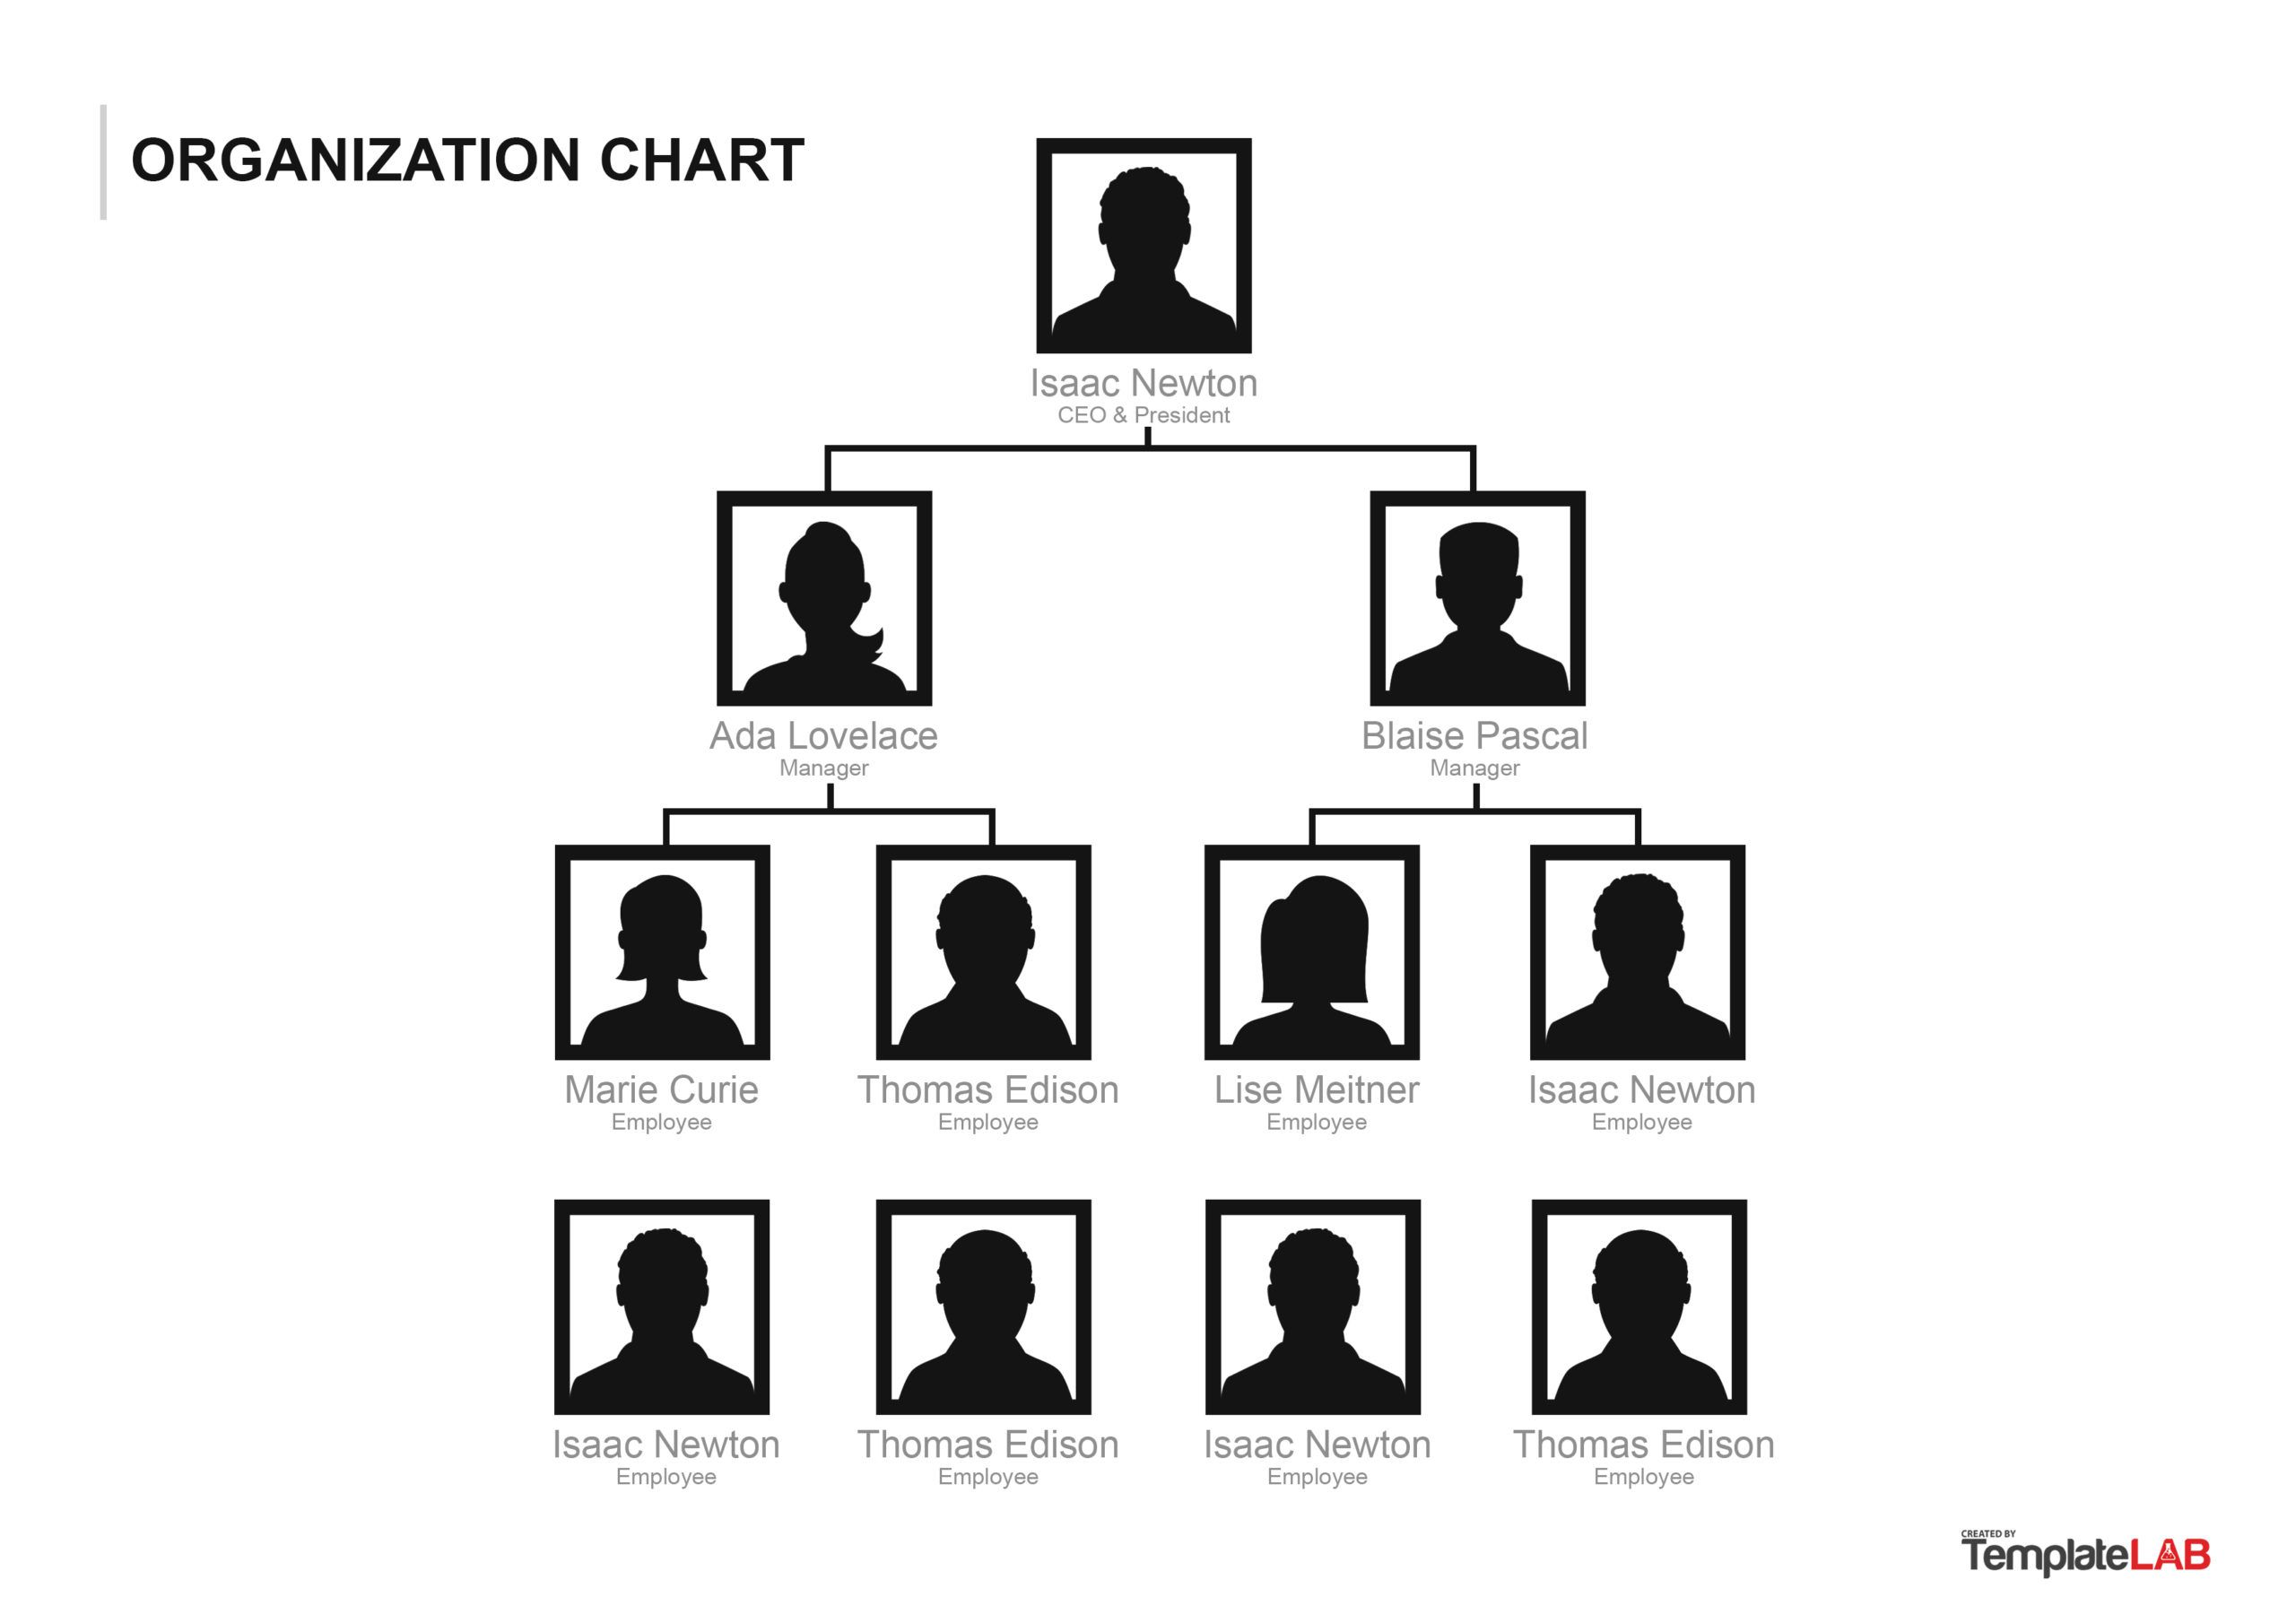 008 Archaicawful Hierarchy Organizational Chart Template Word Highest Quality  Hierarchical Organization -Full